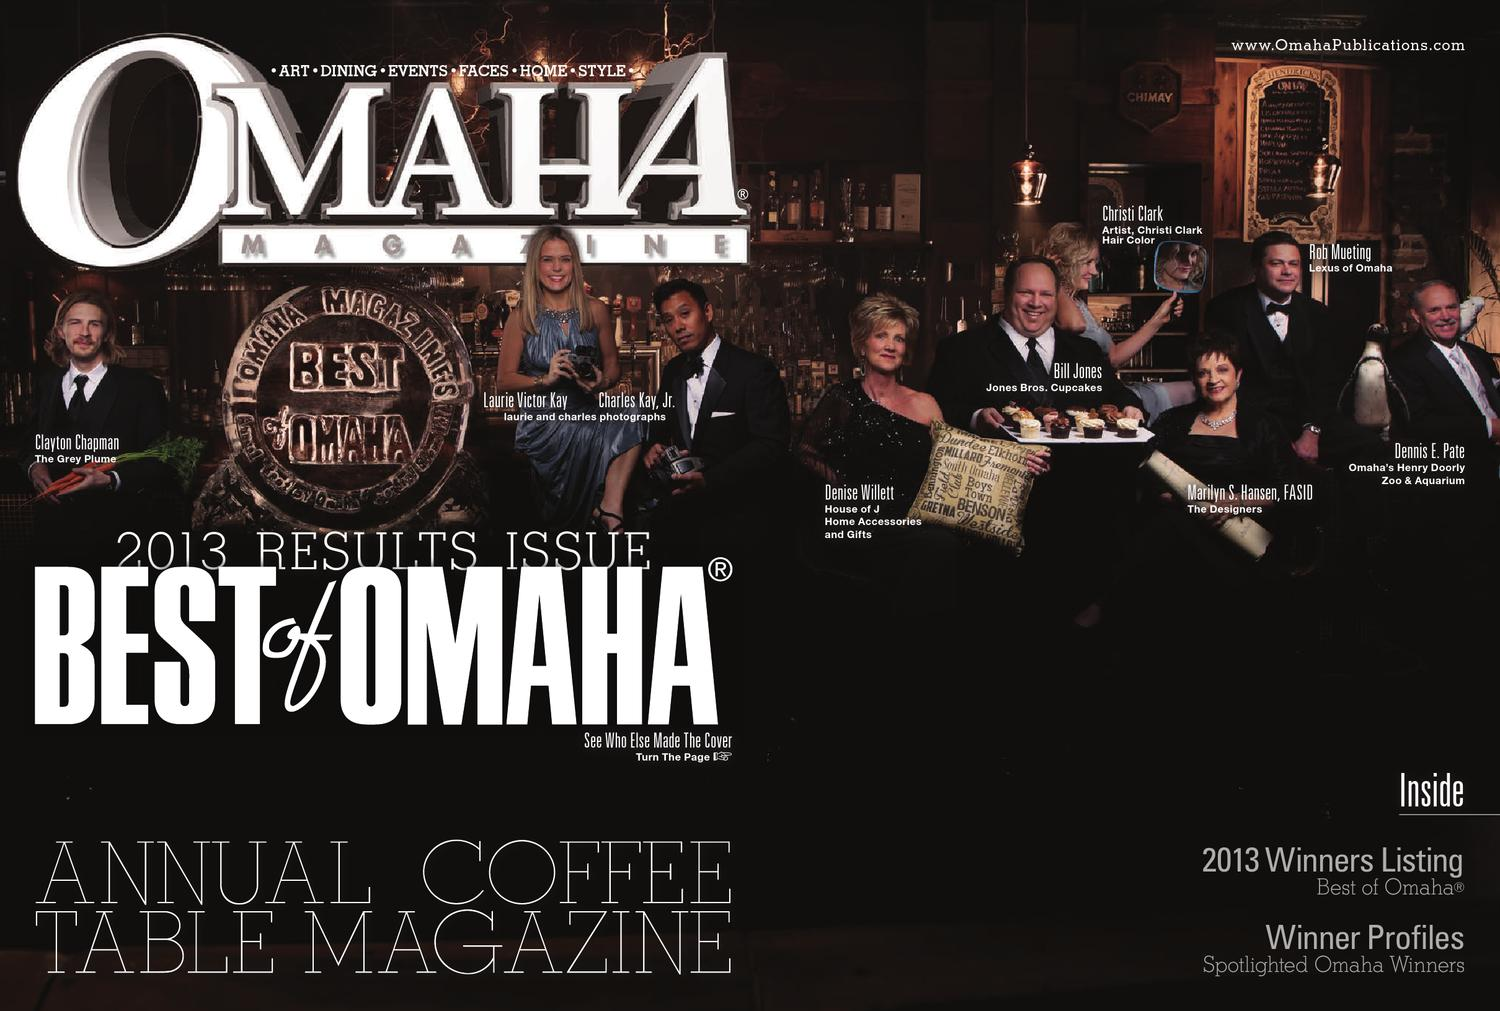 Best of omaha 2013 results and profiles by omaha magazine for Cover jones motor company